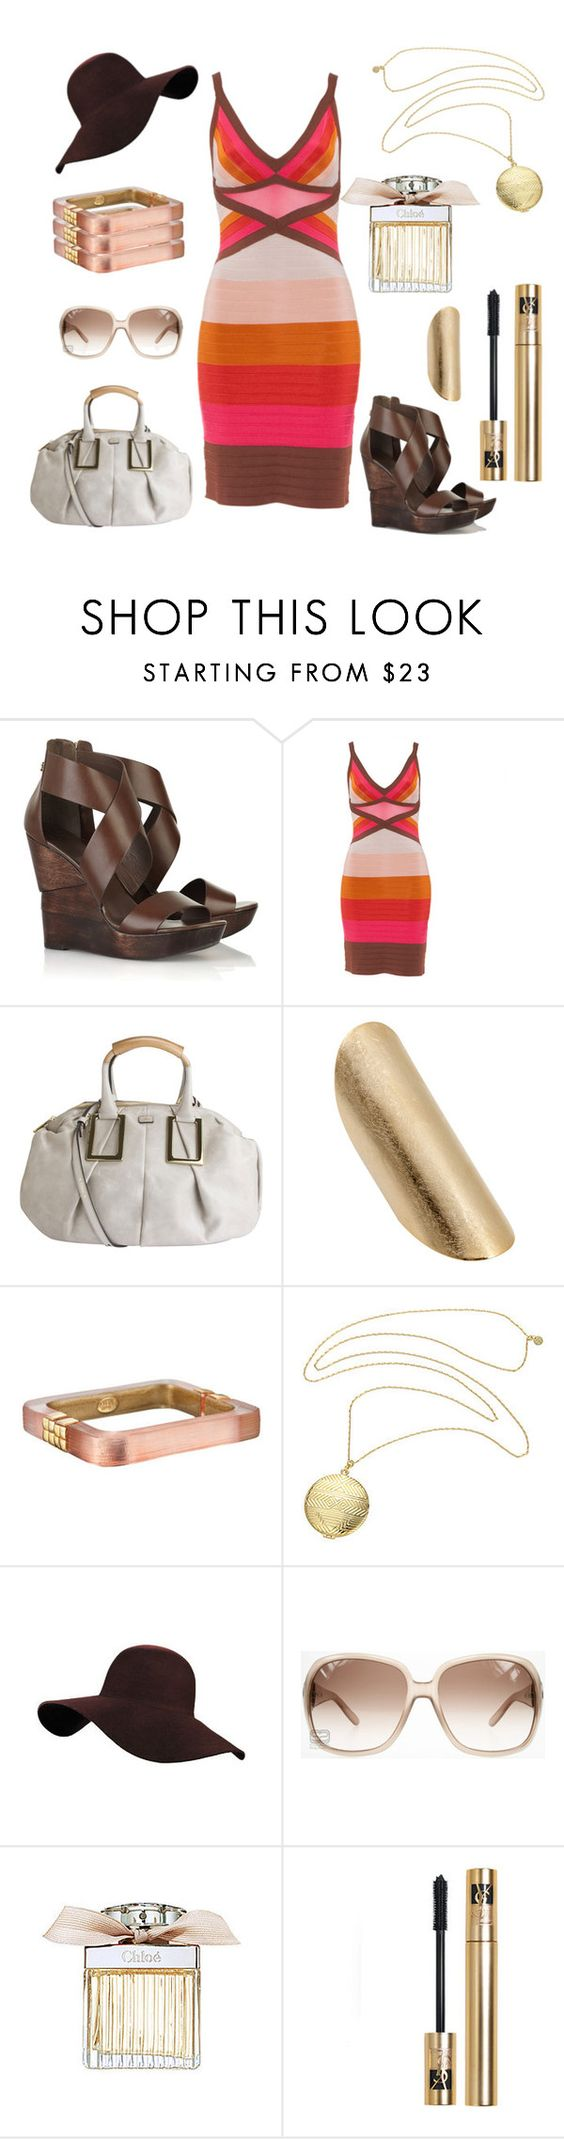 """Golden"" by velvetmansion ❤ liked on Polyvore featuring Diane Von Furstenberg, Missoni, Chloé, Soixante Neuf, Gucci and Yves Saint Laurent"